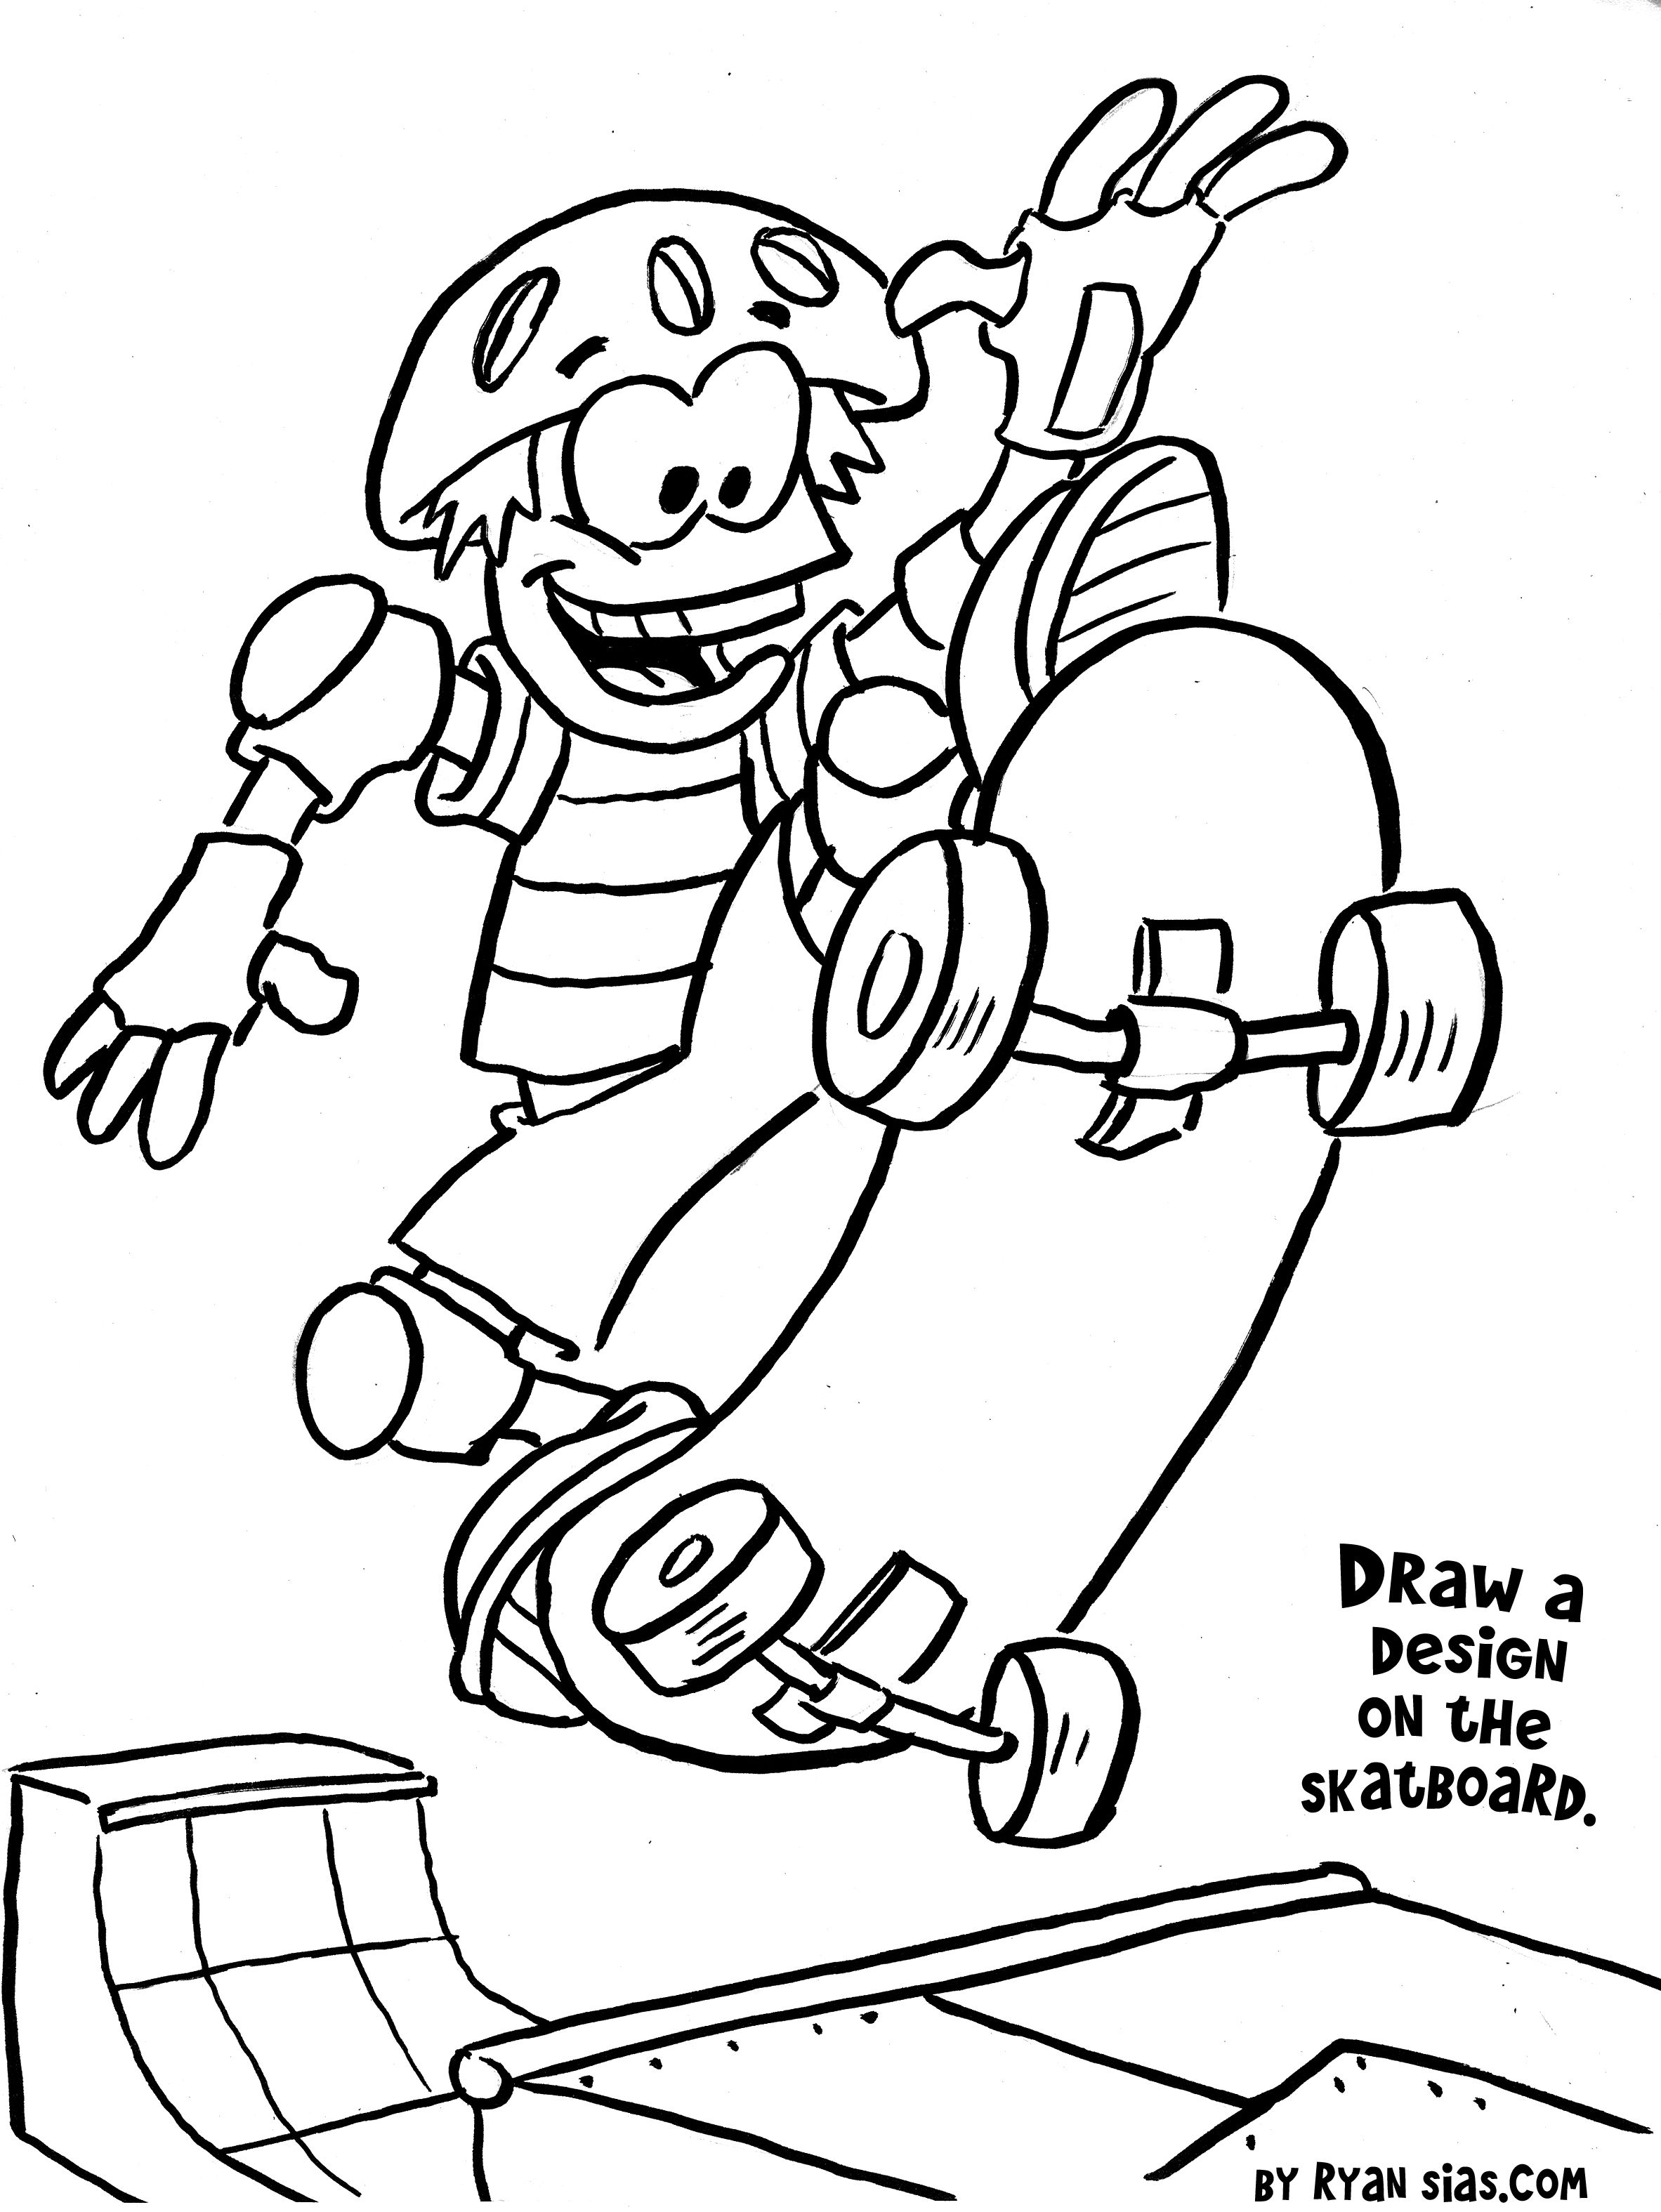 free printable sports coloring pages free printable sports coloring pages skateboard printable sports coloring pages free